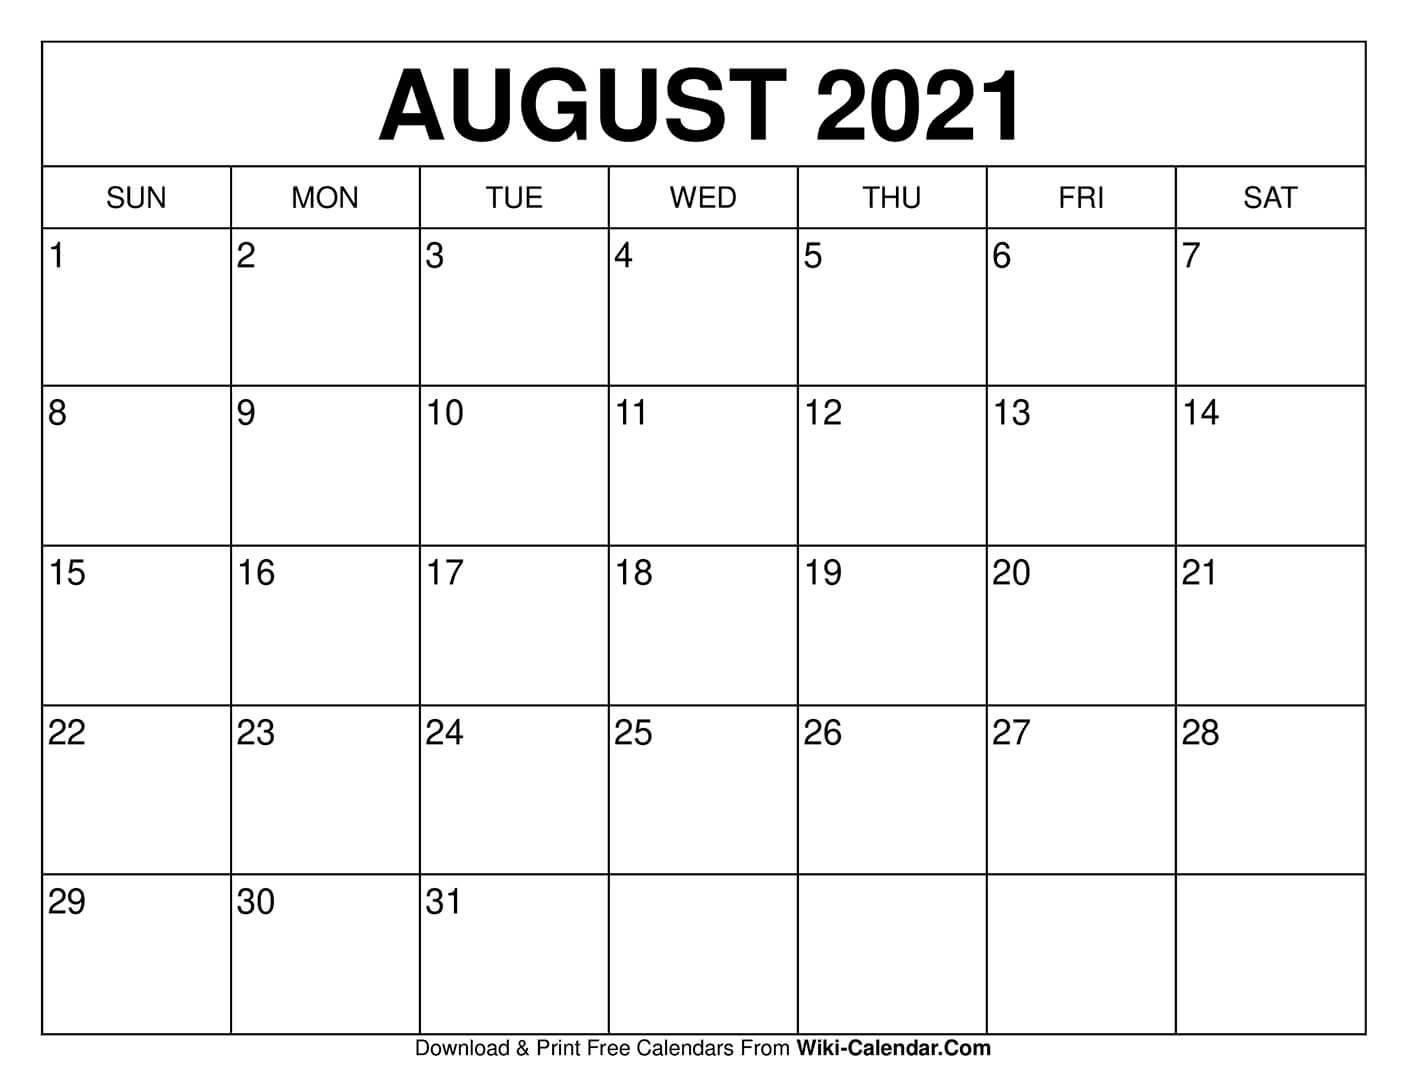 Get Full Page Calendar For August 2021 Printable